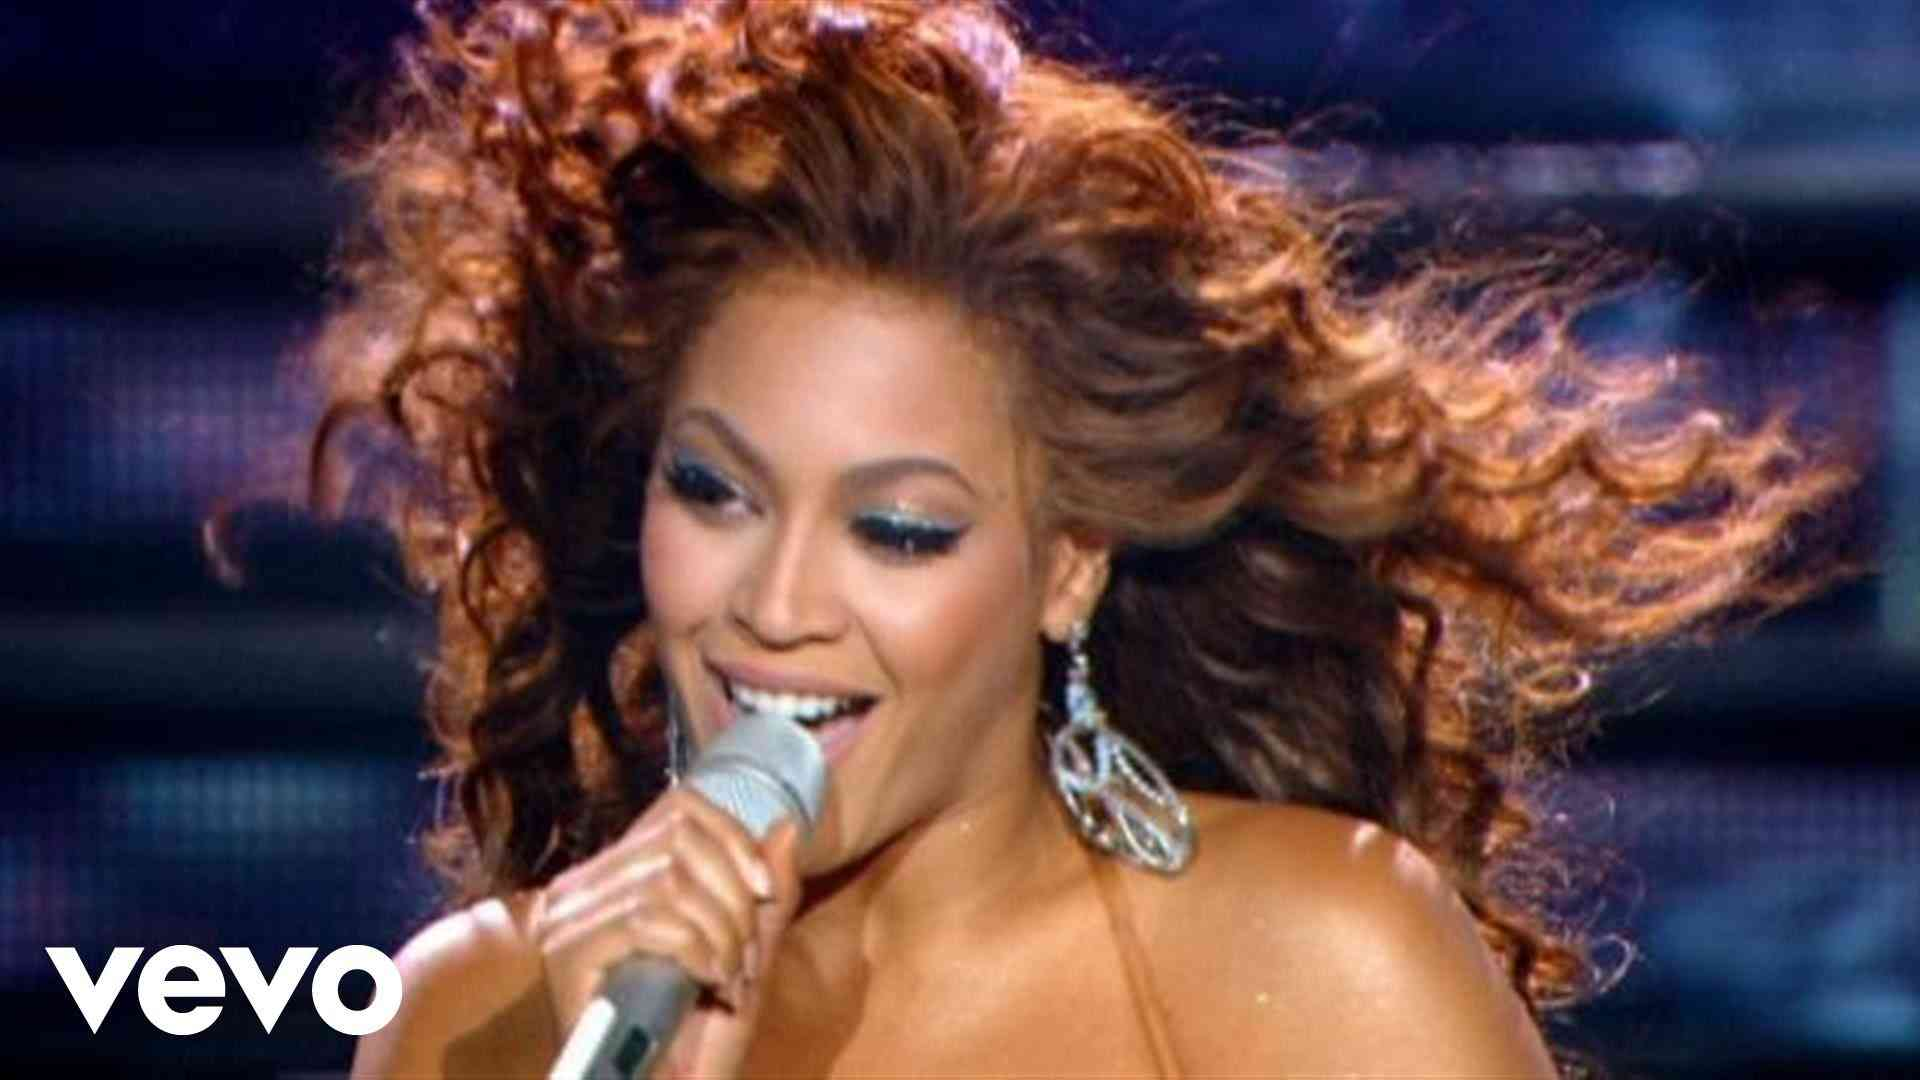 Beyoncé - Crazy In Love (Live) - YouTube